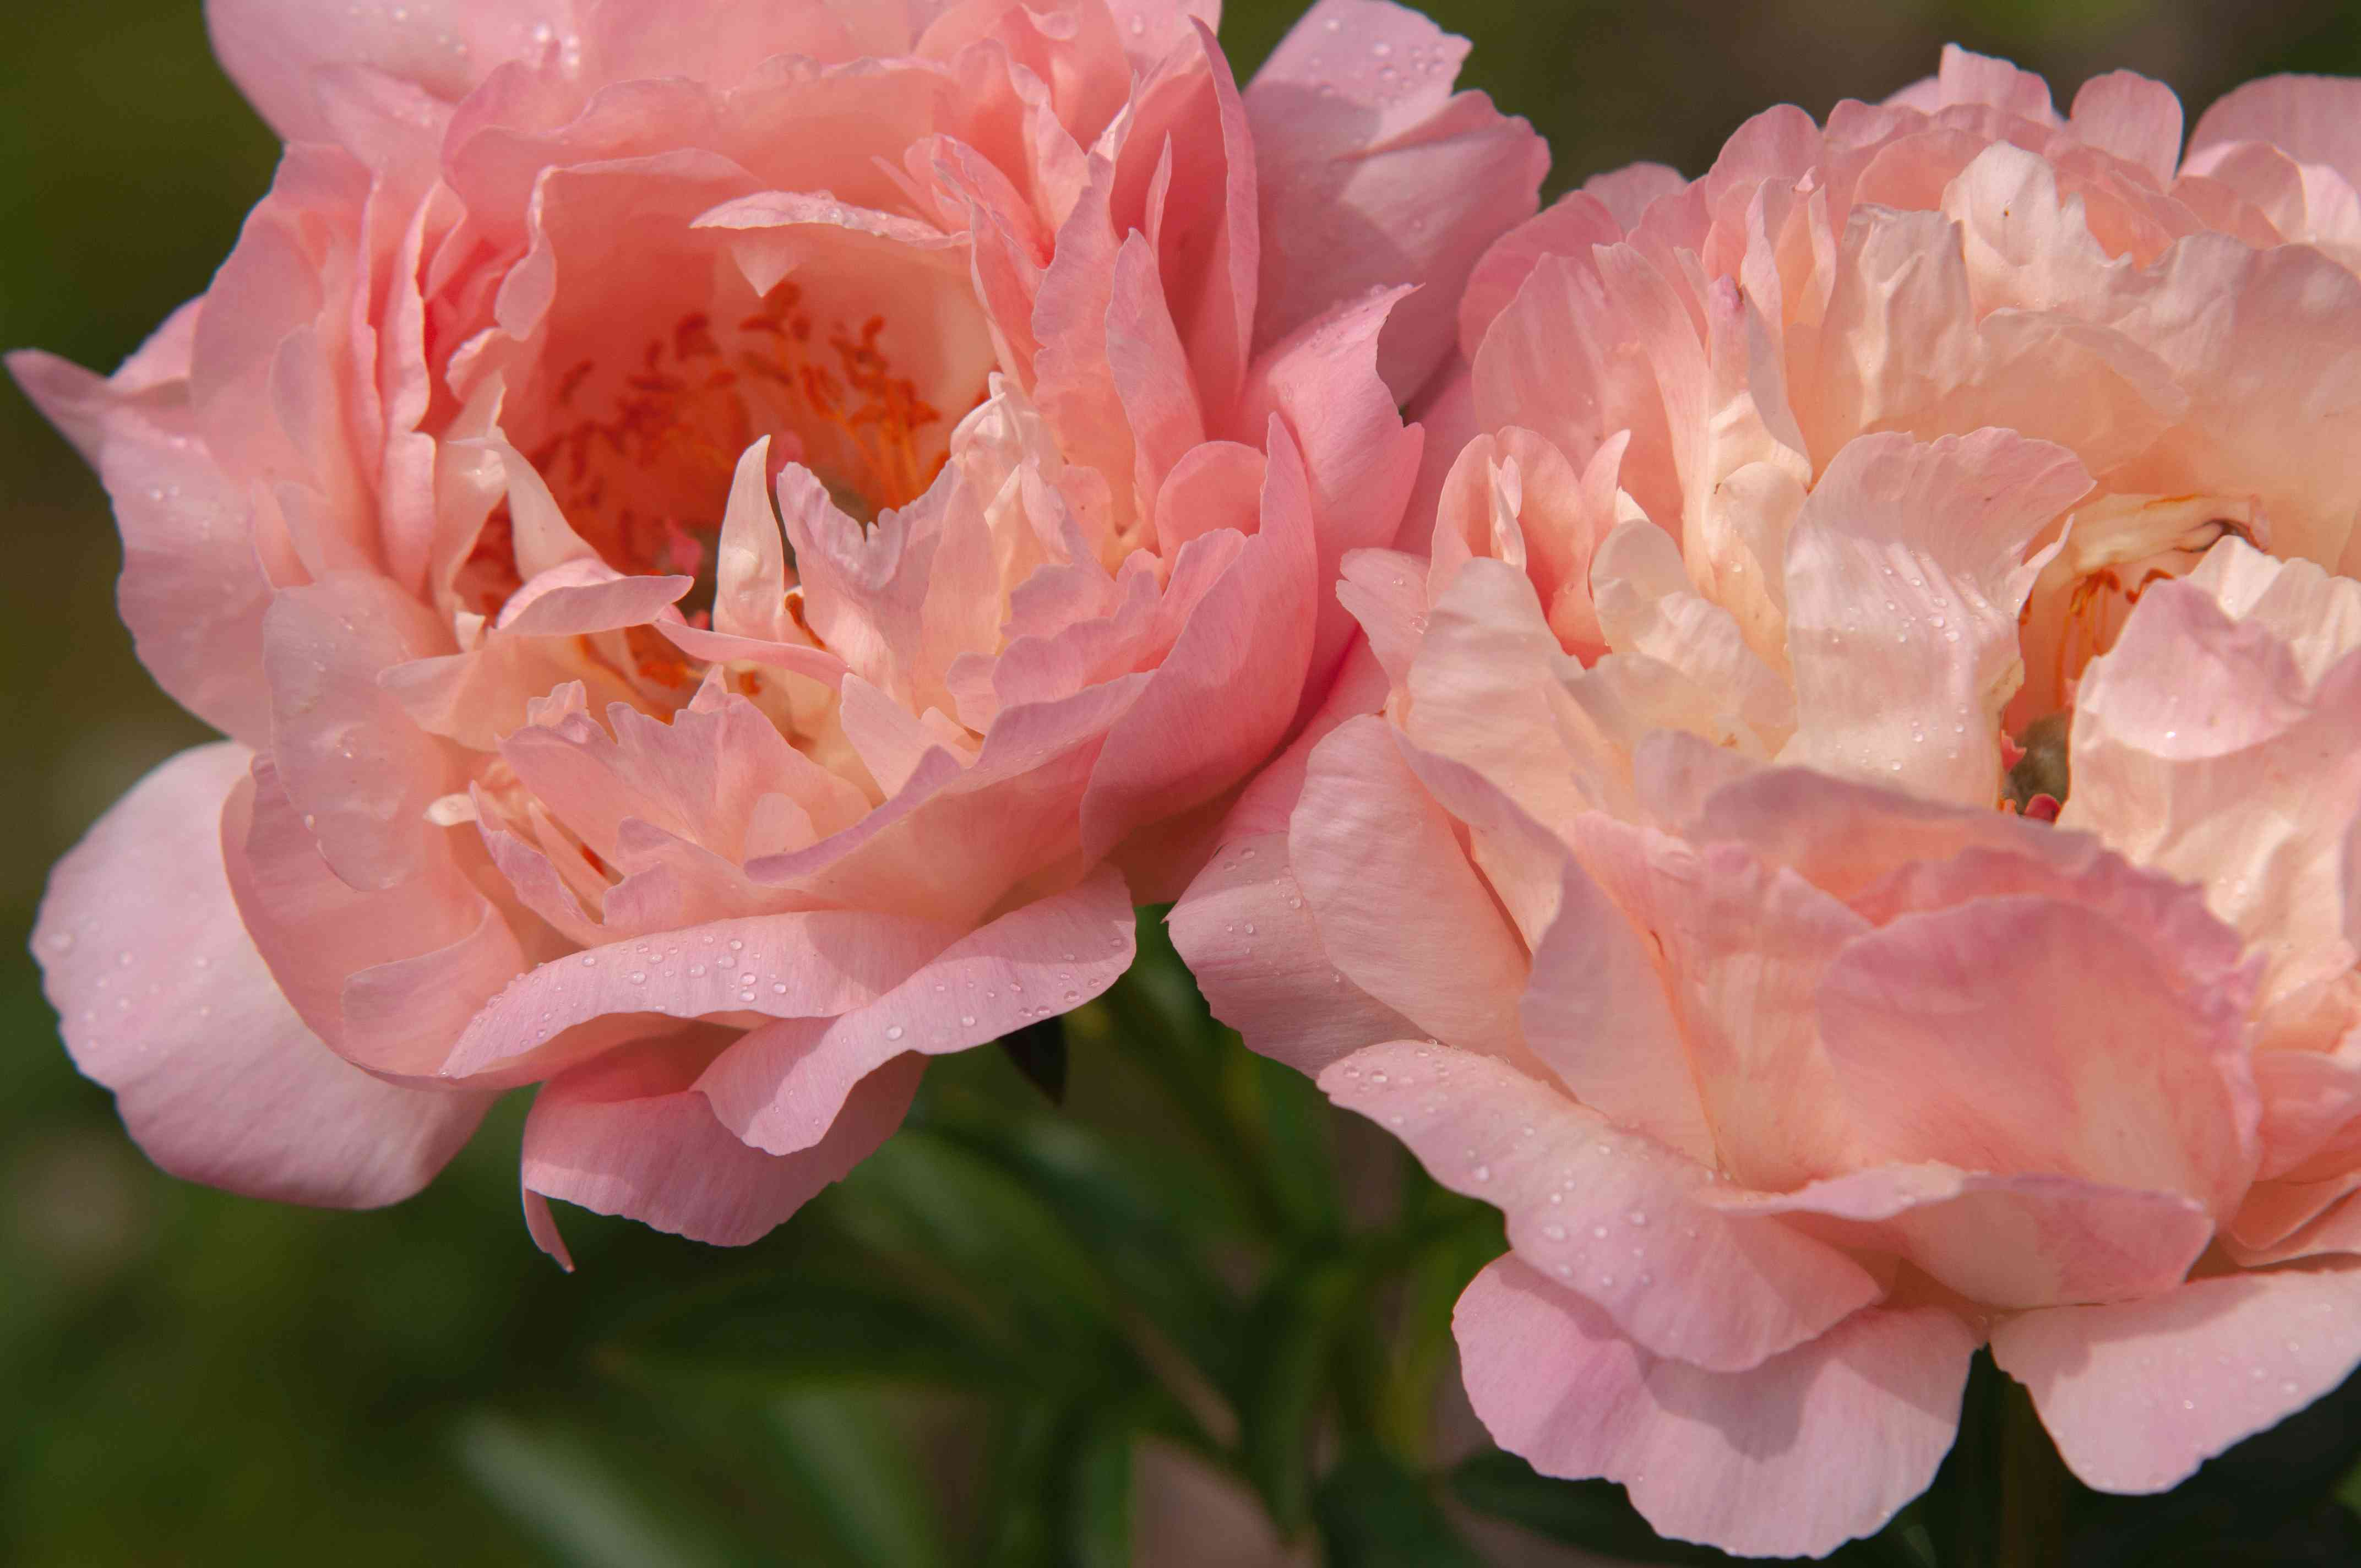 Peonies flowers with ruffled light pink flowers closeup